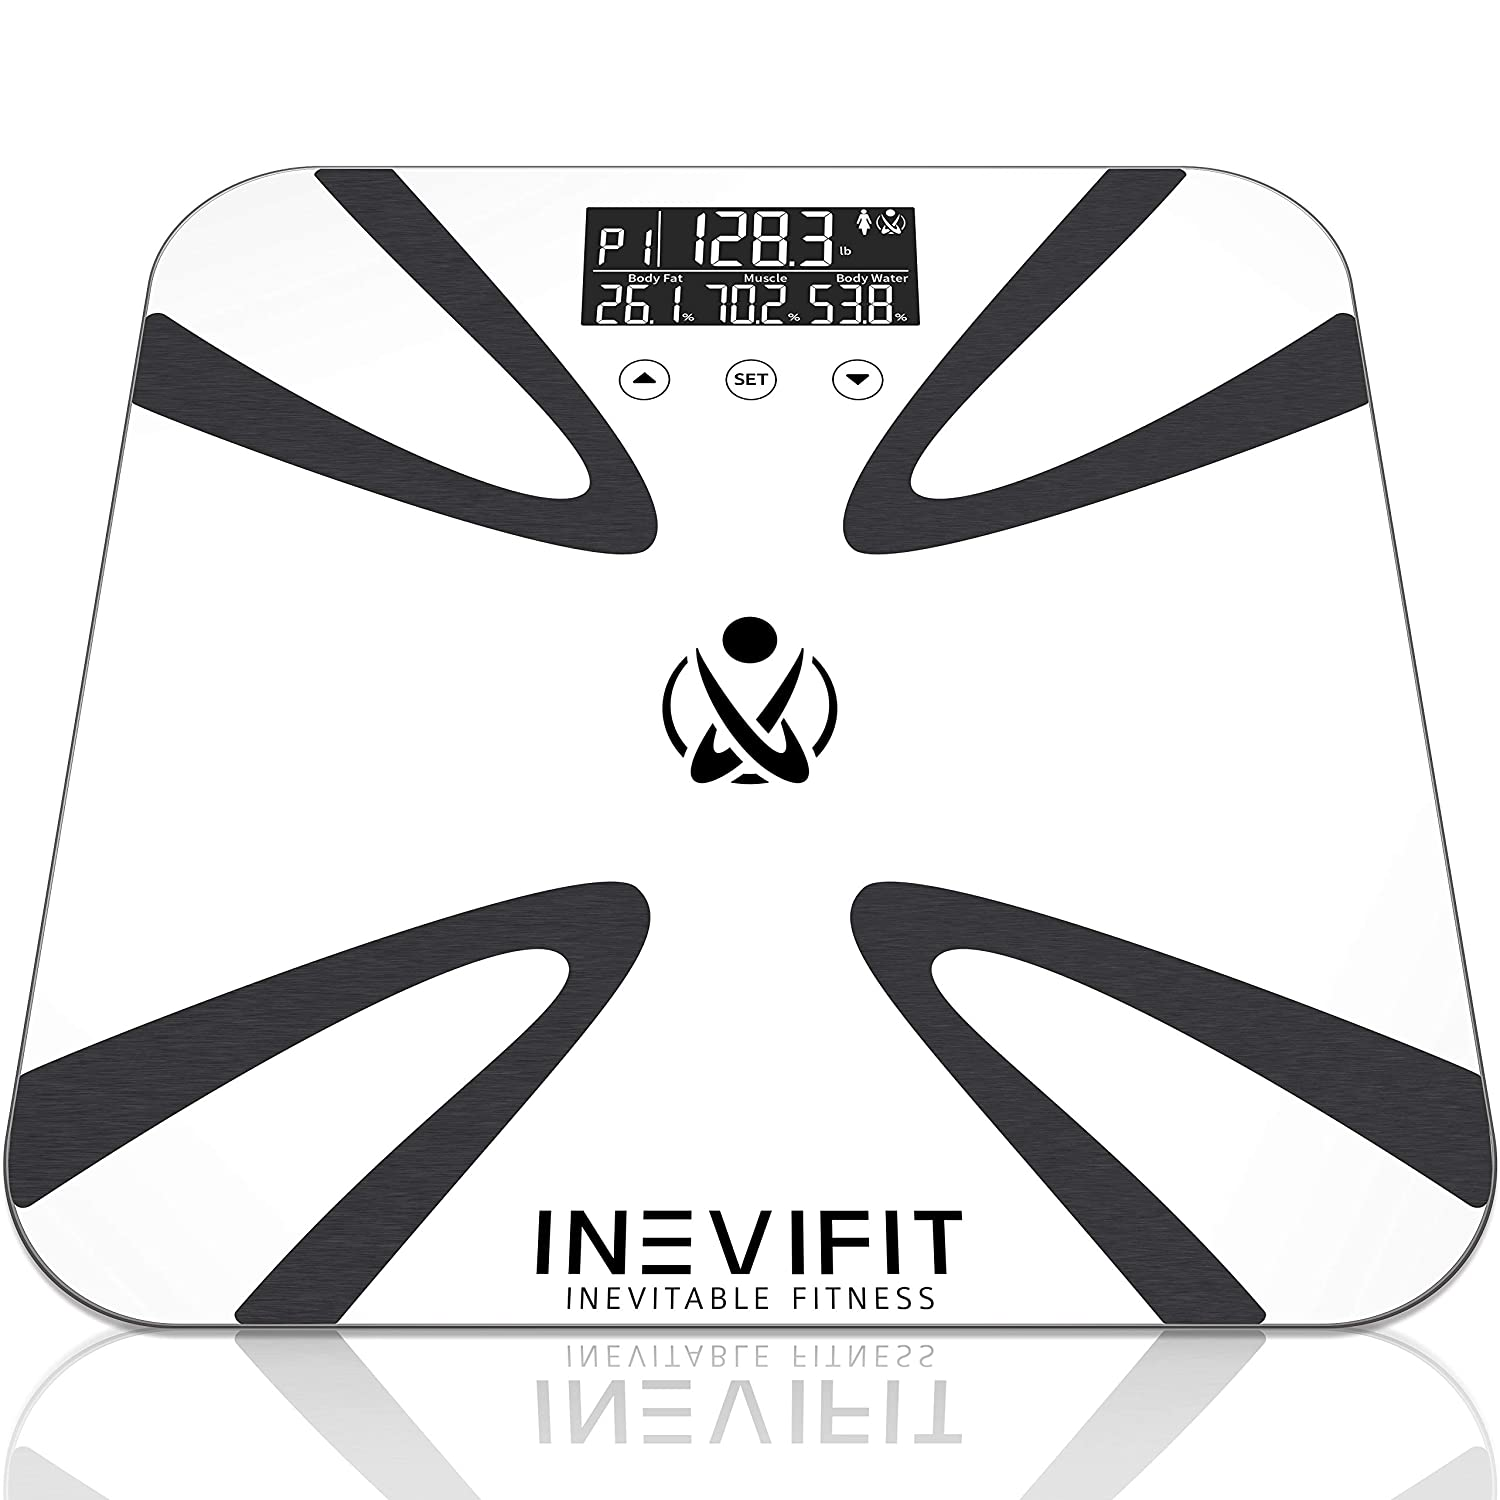 INEVIFIT Body Fat Scale, Highly Accurate Digital Bathroom Body Composition Analyzer, Measures Weight, Body Fat, Water, Muscle, BMI, Visceral Levels Bone Mass for 10 Users. 5-Year Warranty